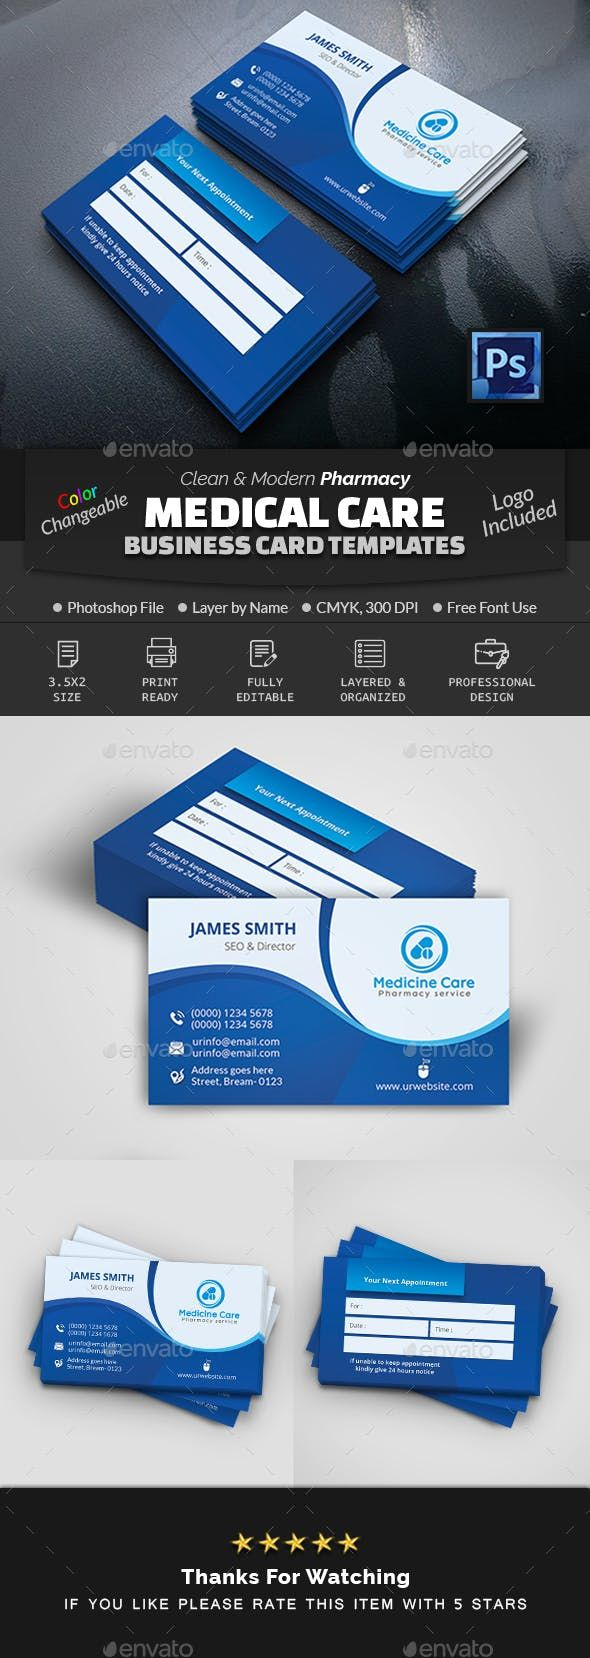 Medical Care Pharmacy Business Card Industry Specific Business Cards Medical Business Card Visiting Card Design Medical Business